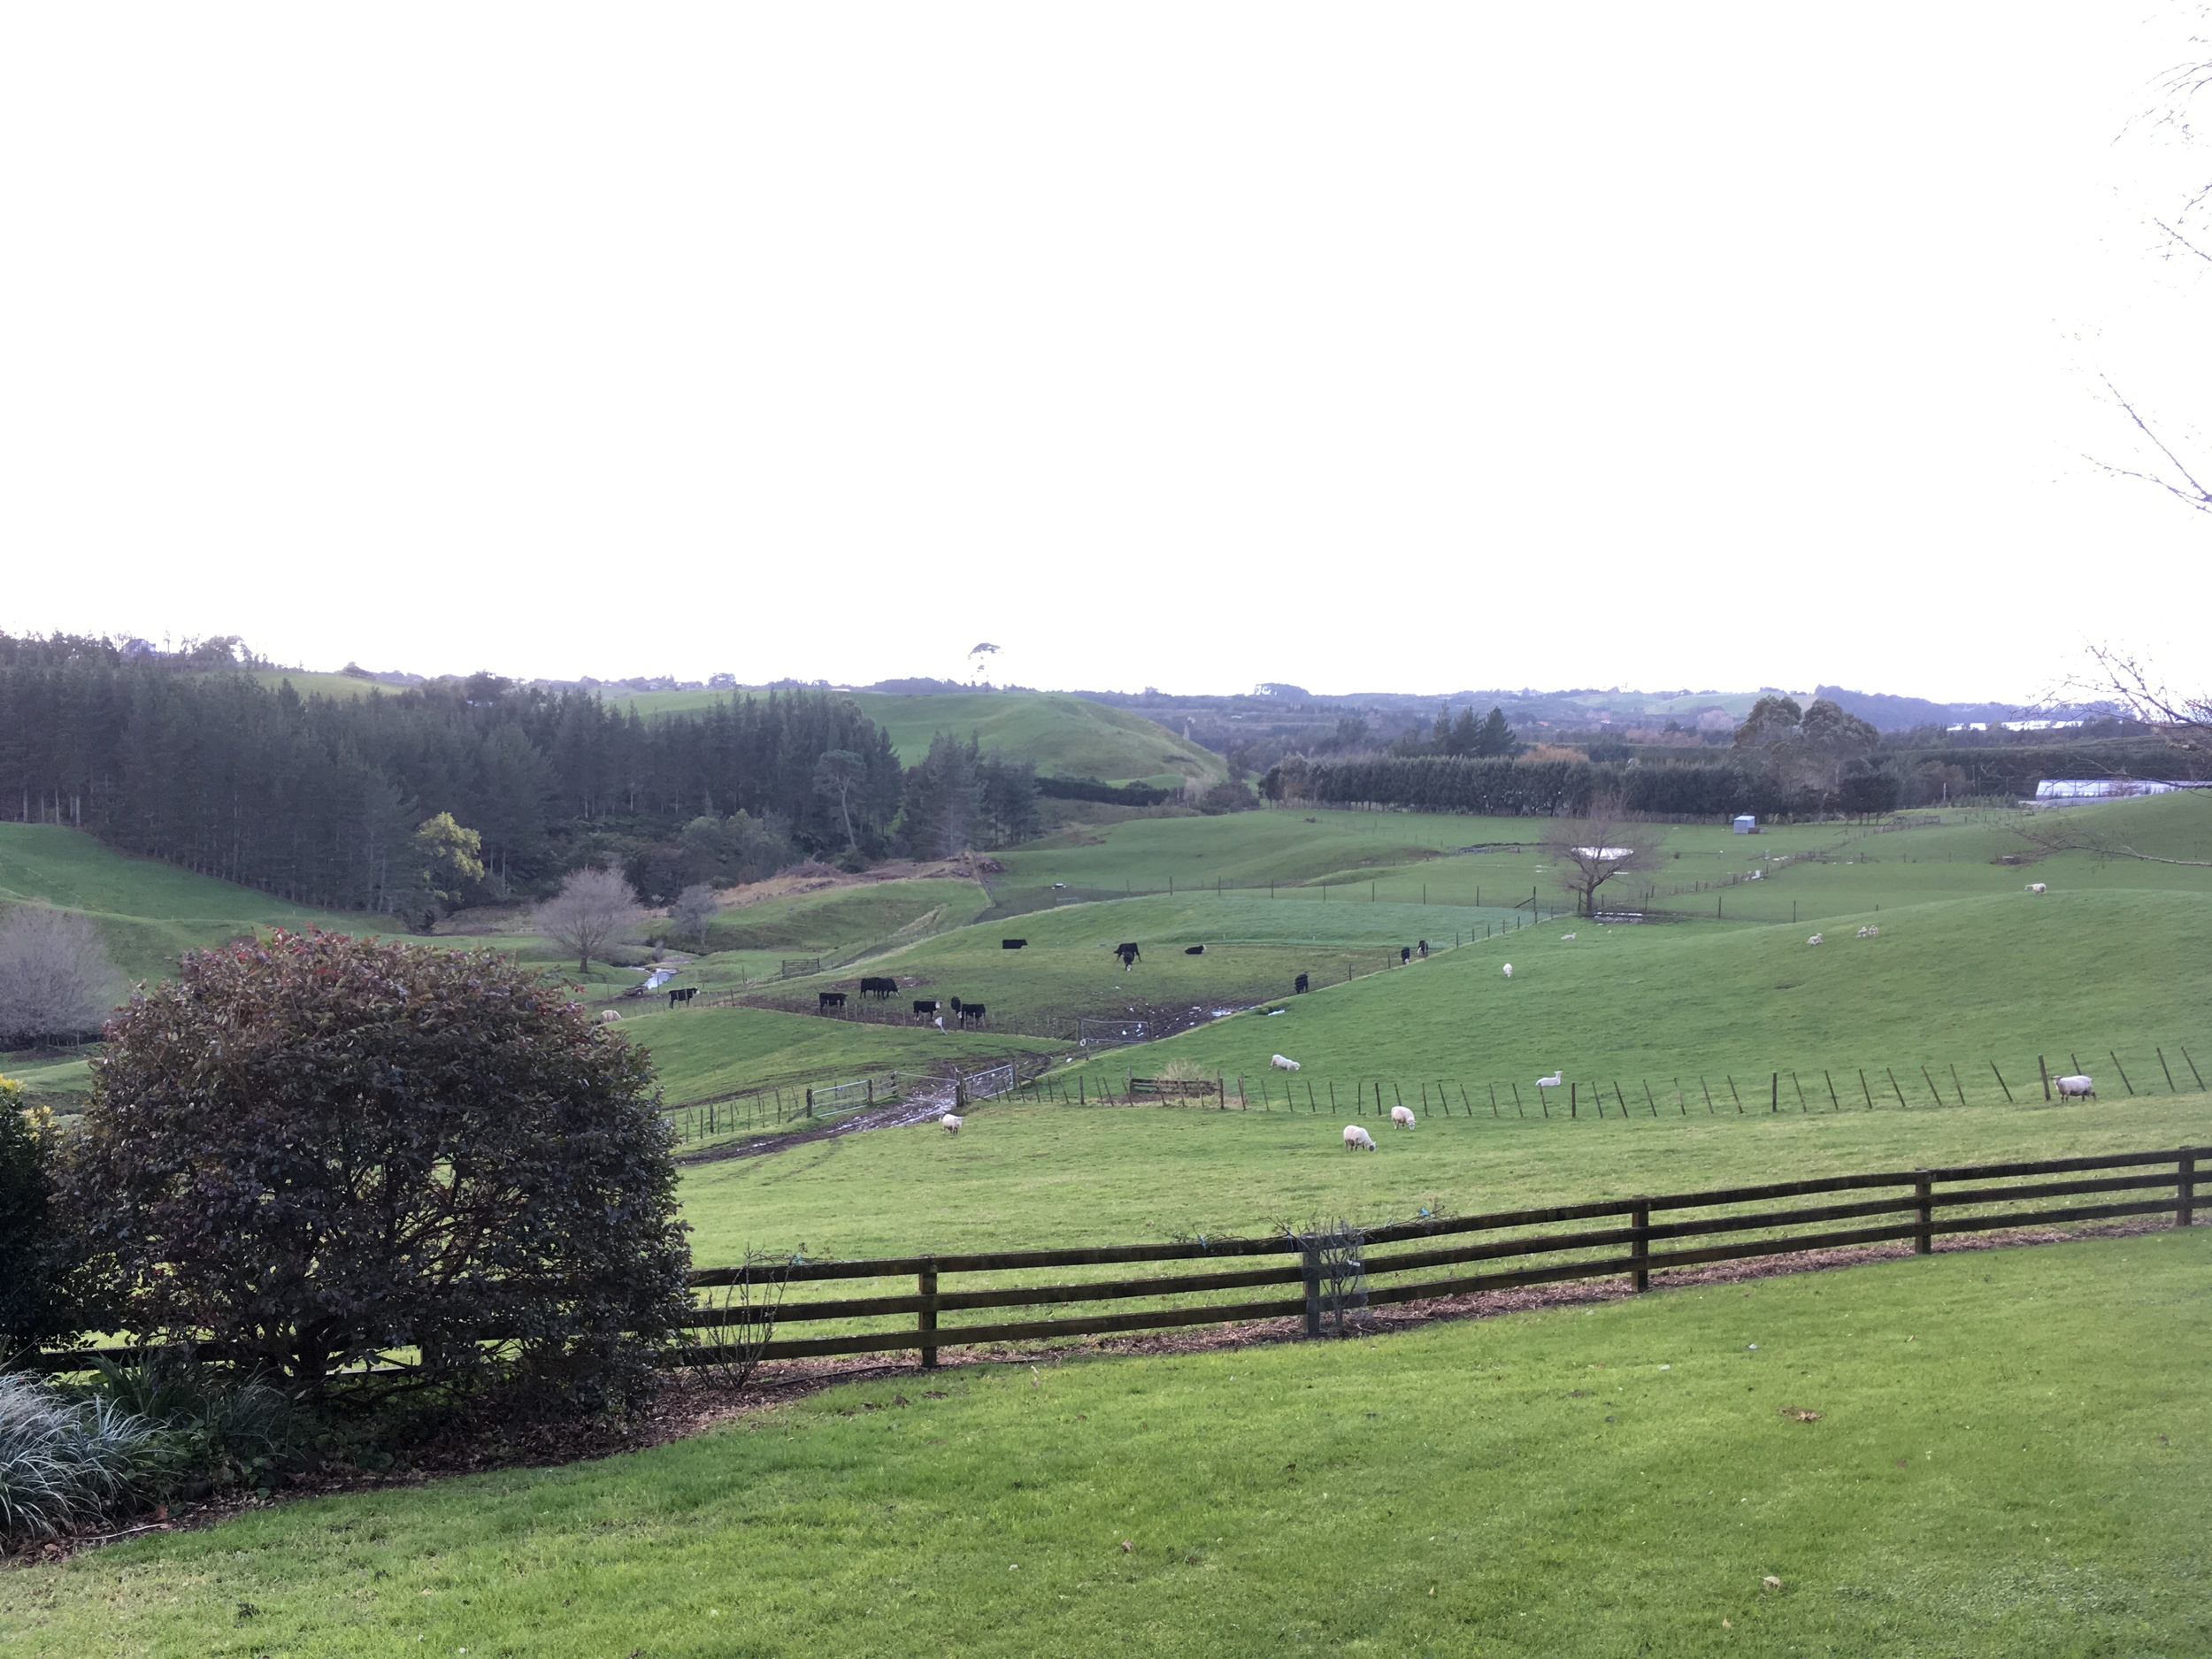 The view of the farm